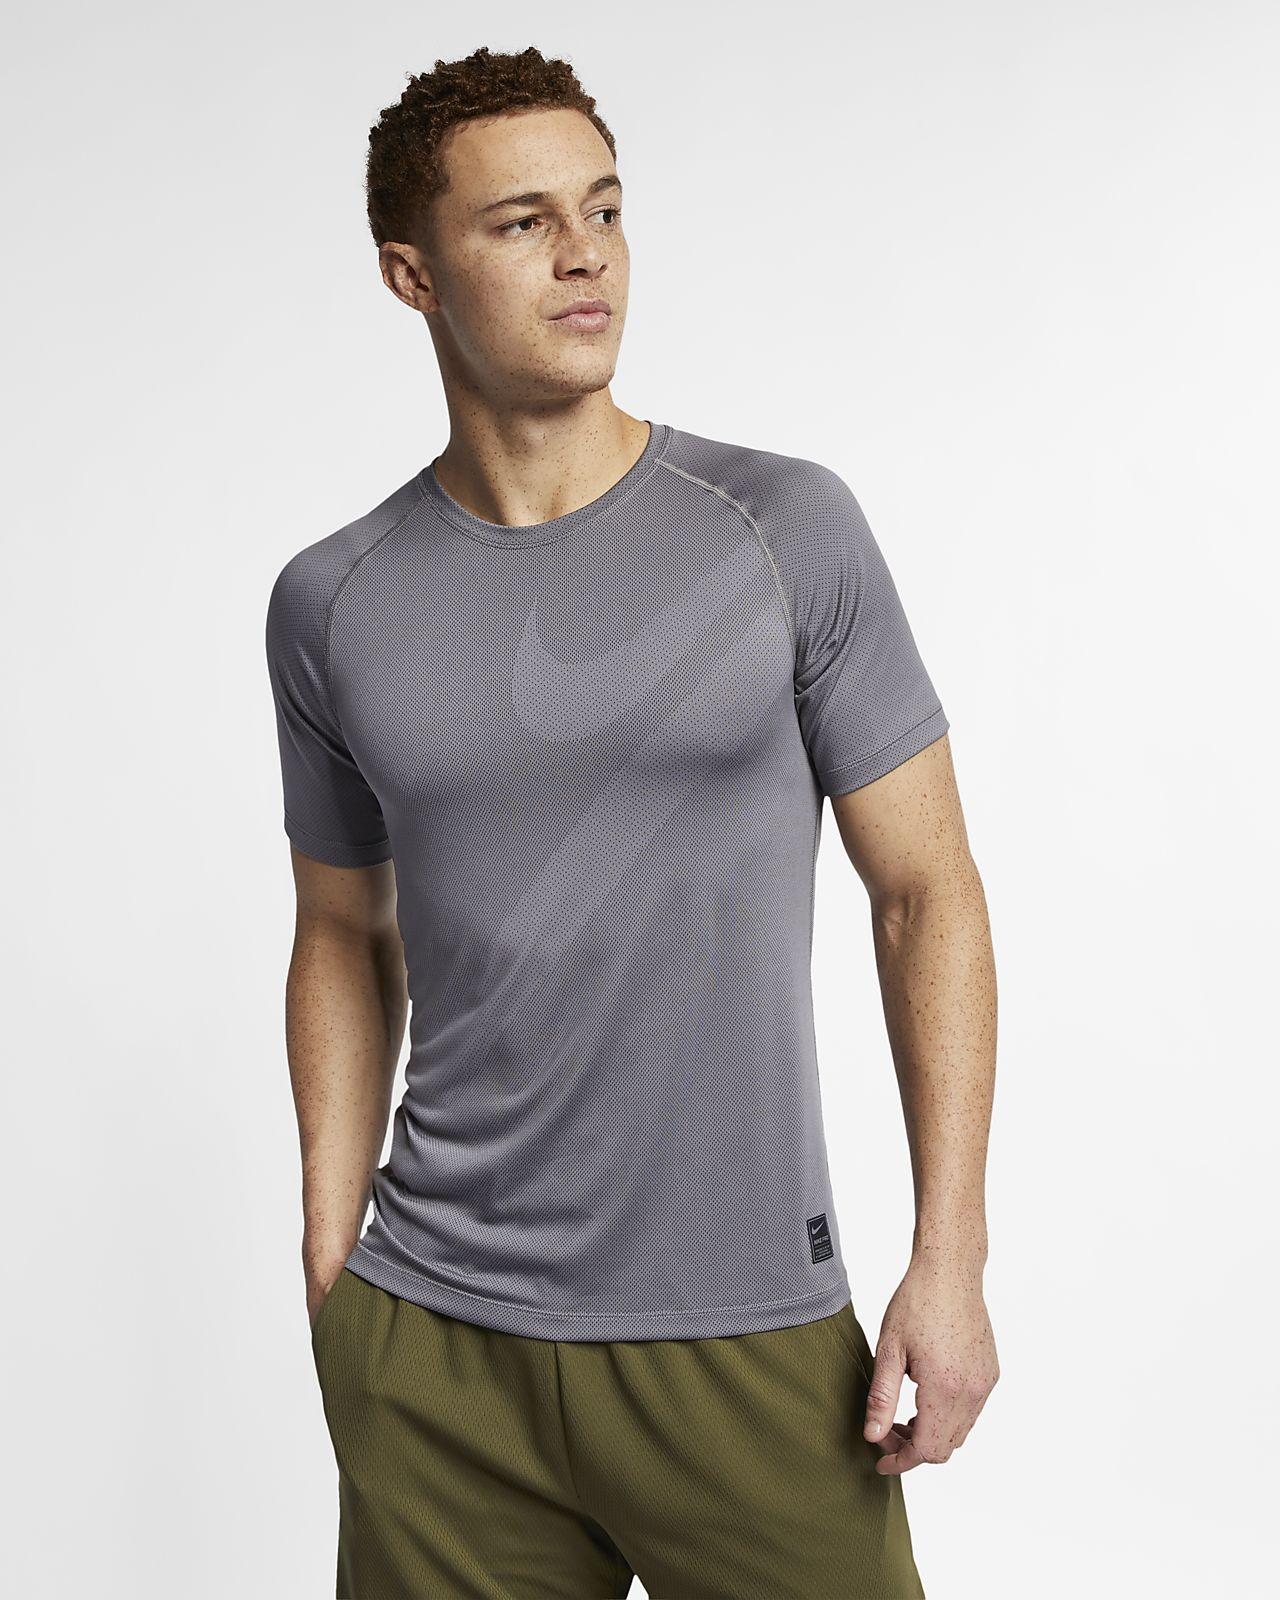 Nike Pro Men's Short-Sleeve Top